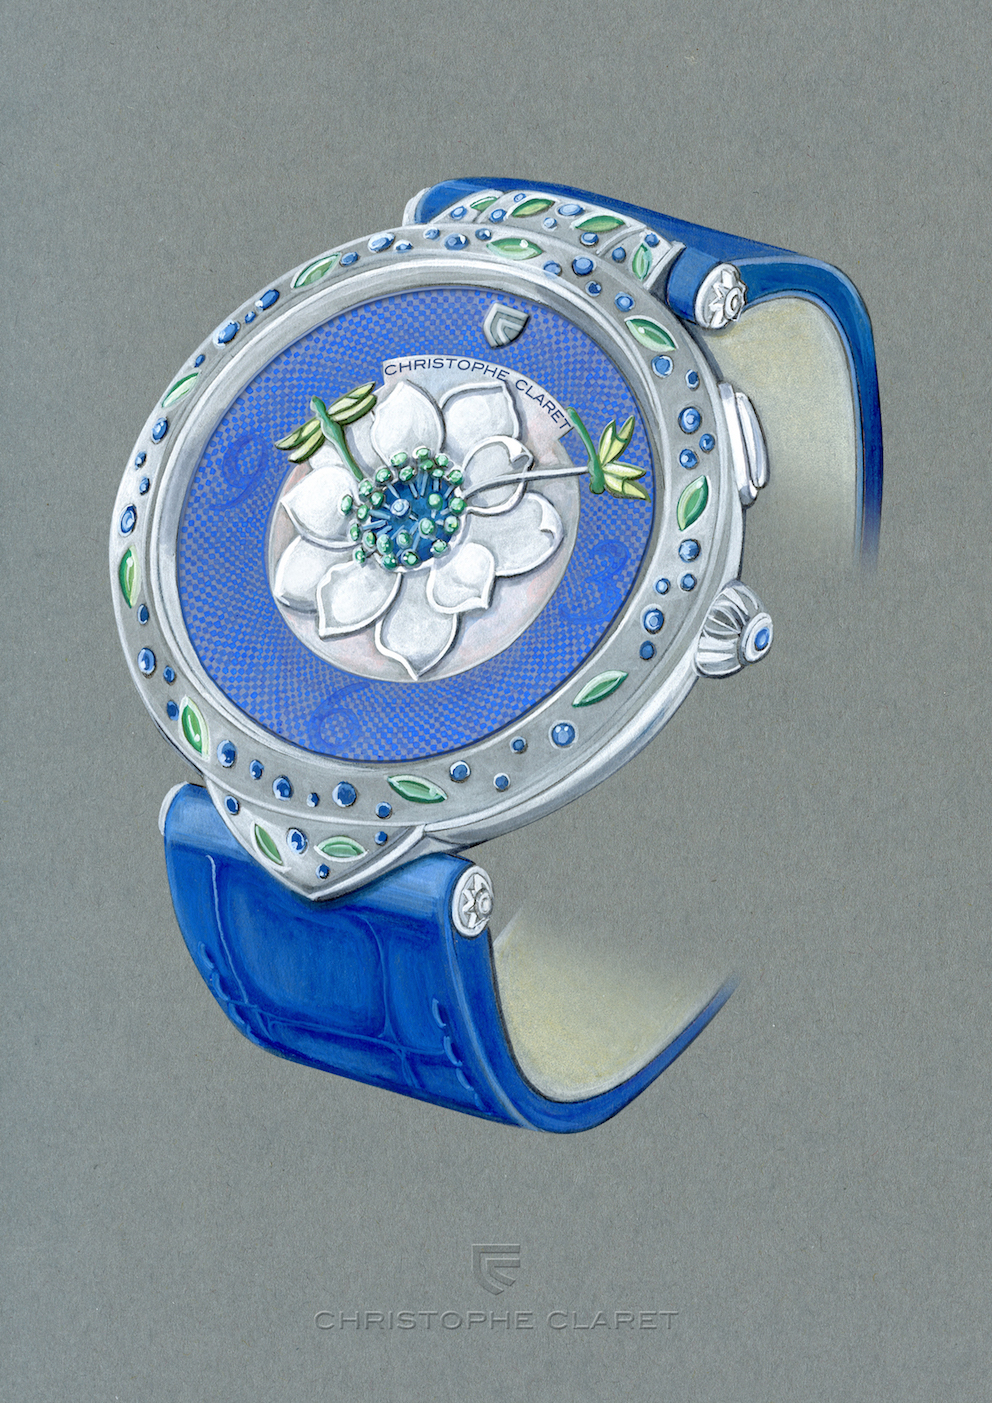 ChristopheClaret_Magicafiore_OnlyWatch_01